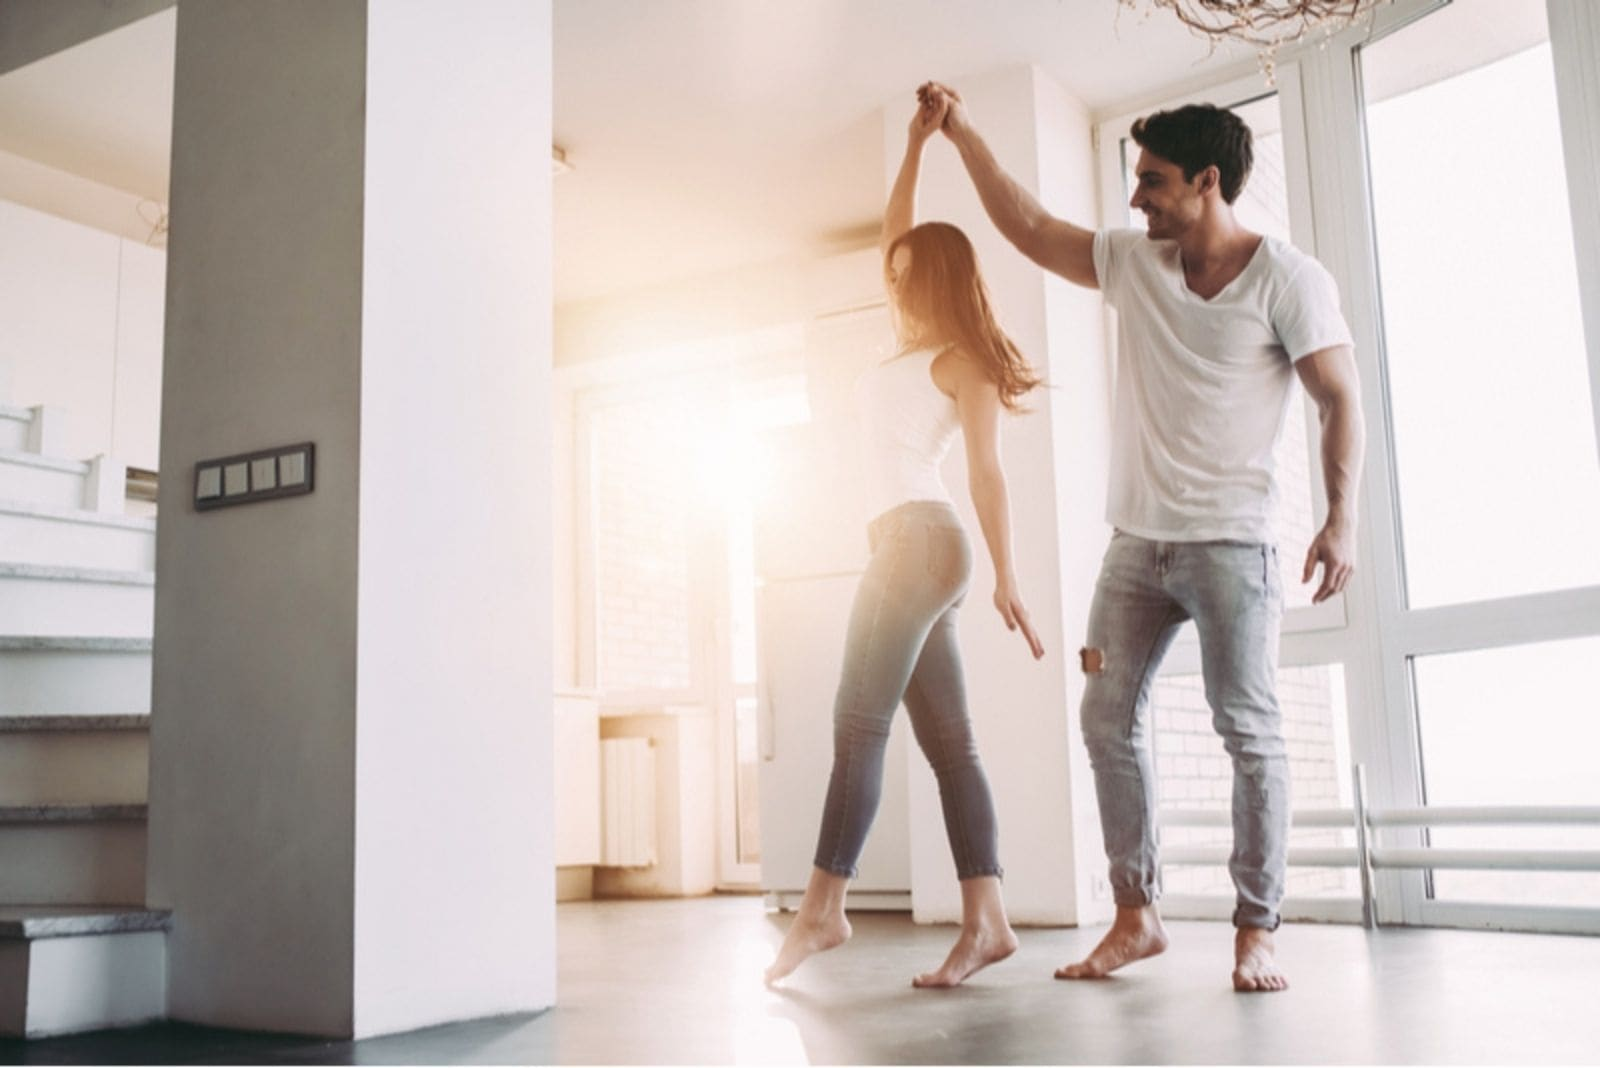 couple dancing around inside an empty room wearing white top and denim jeans